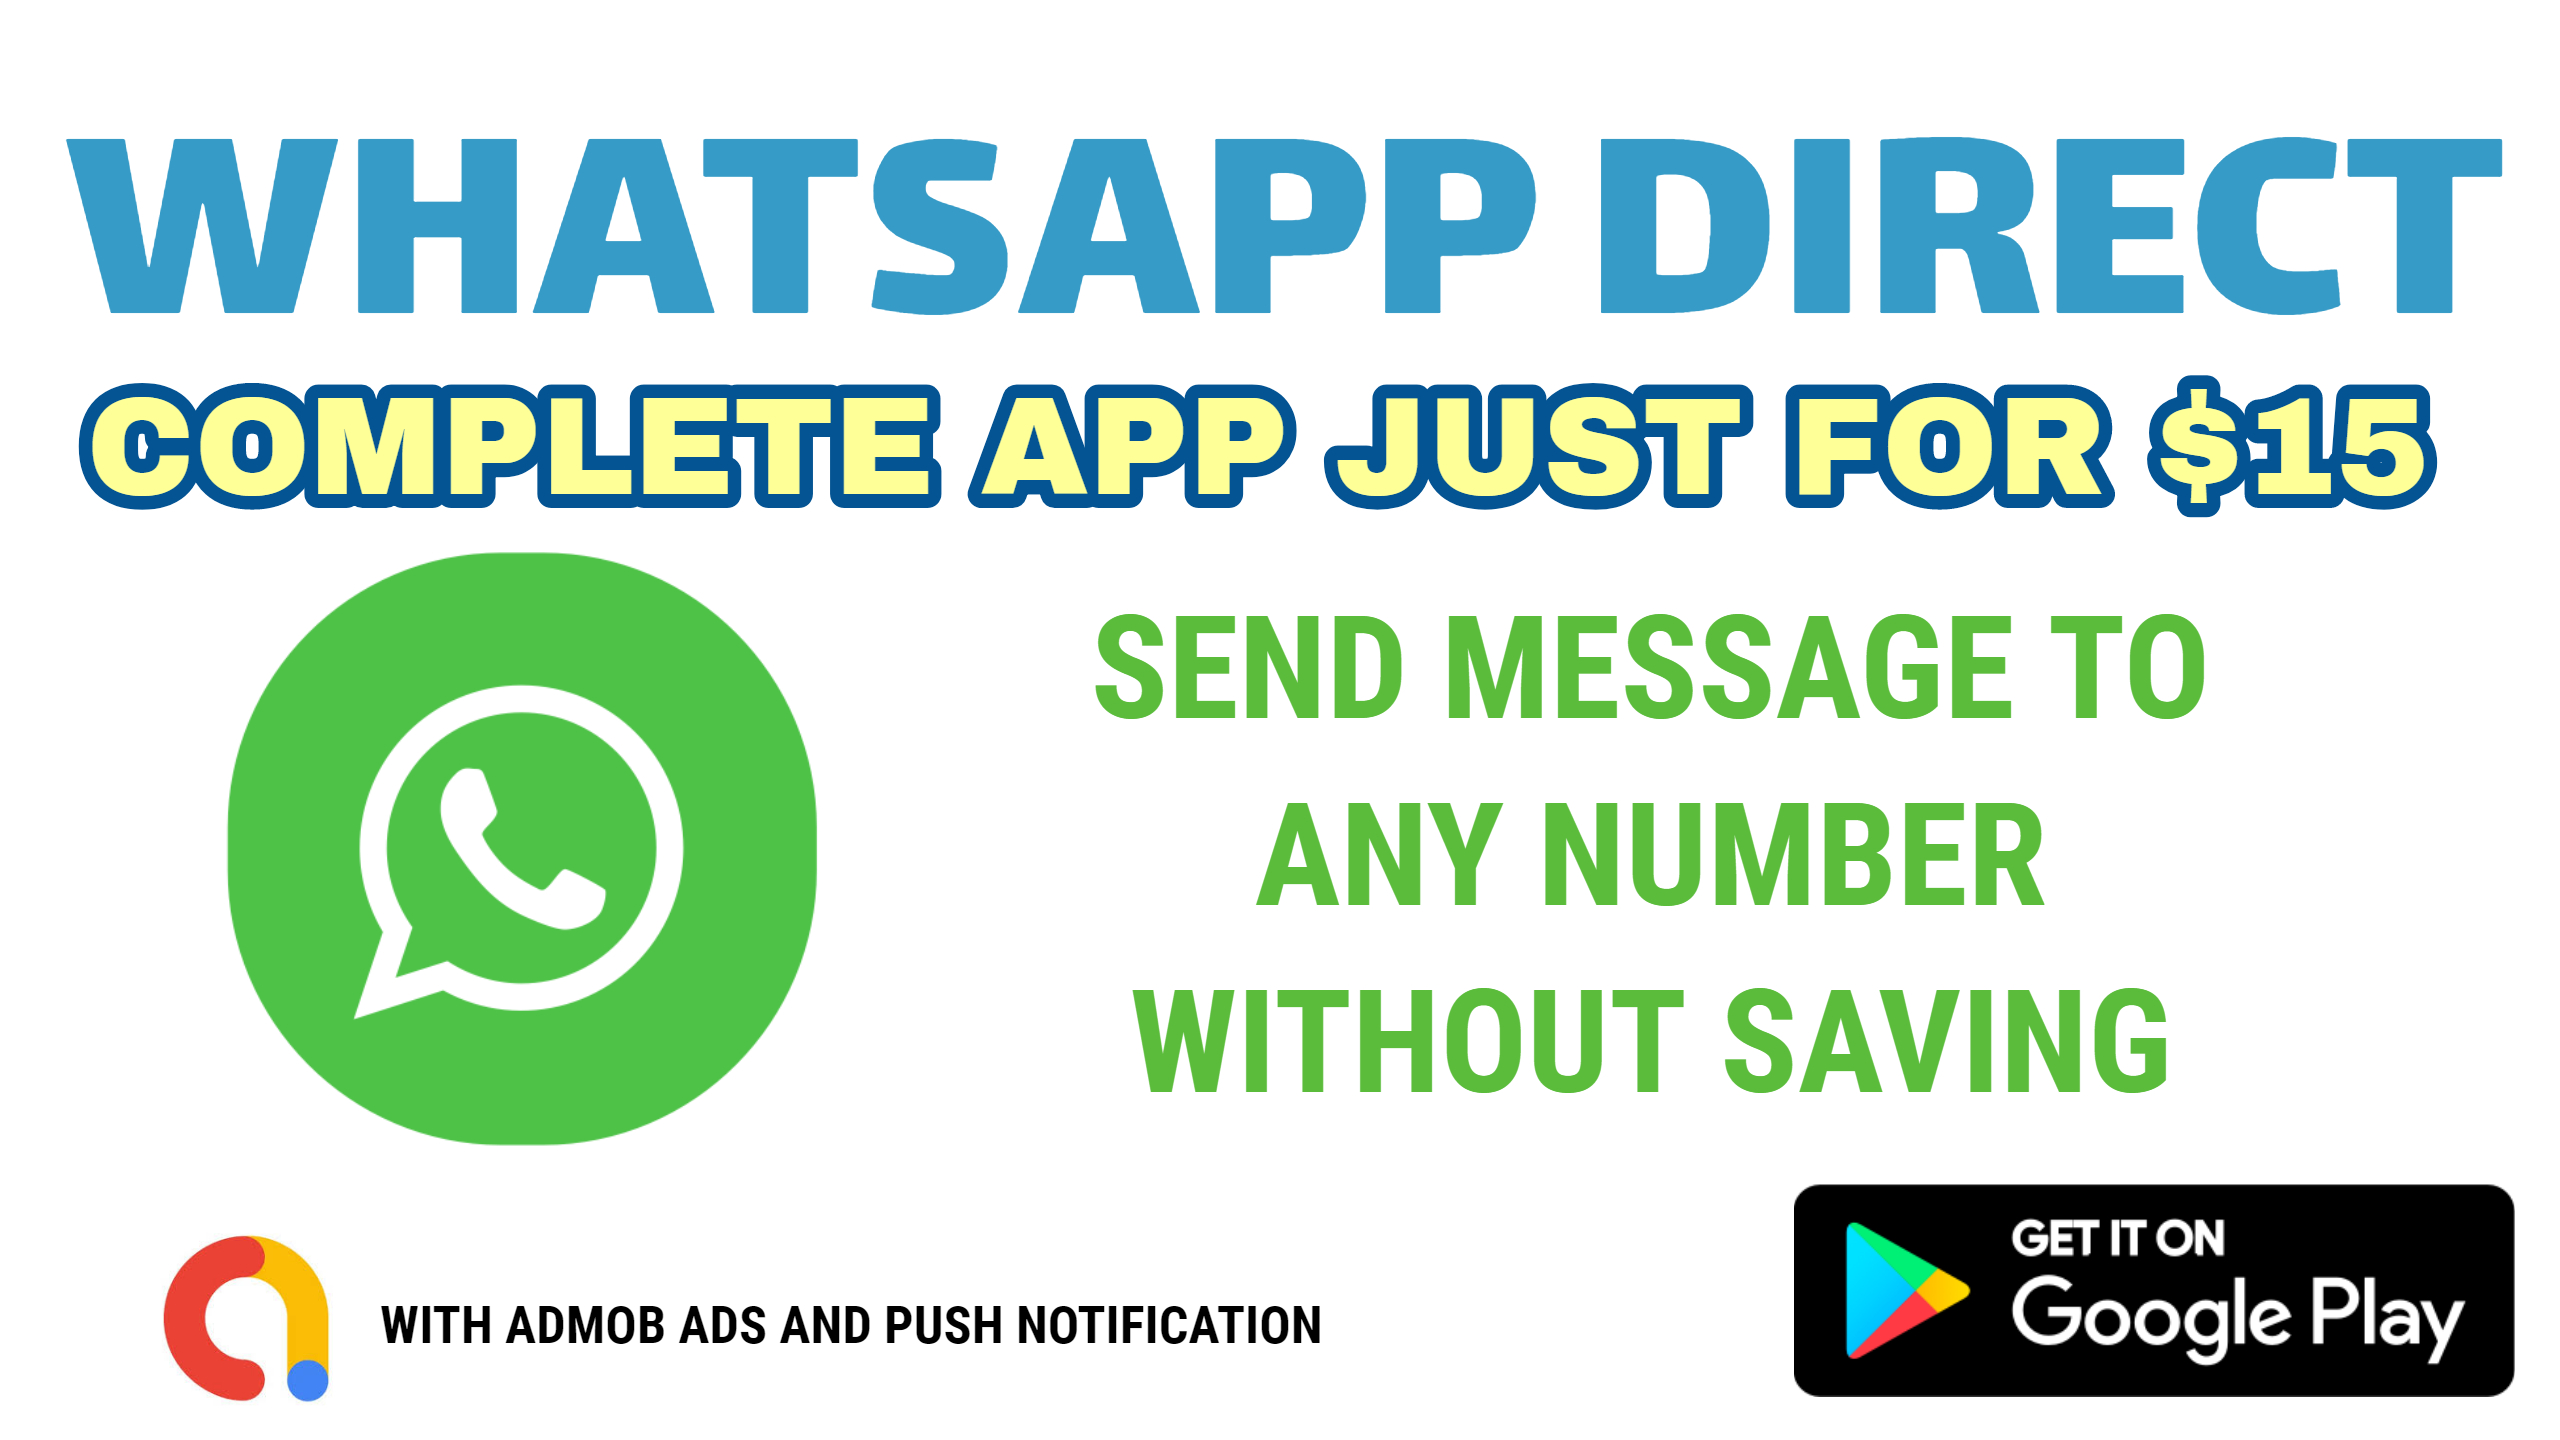 I will create app Whatsapp Direct - Send message to u...